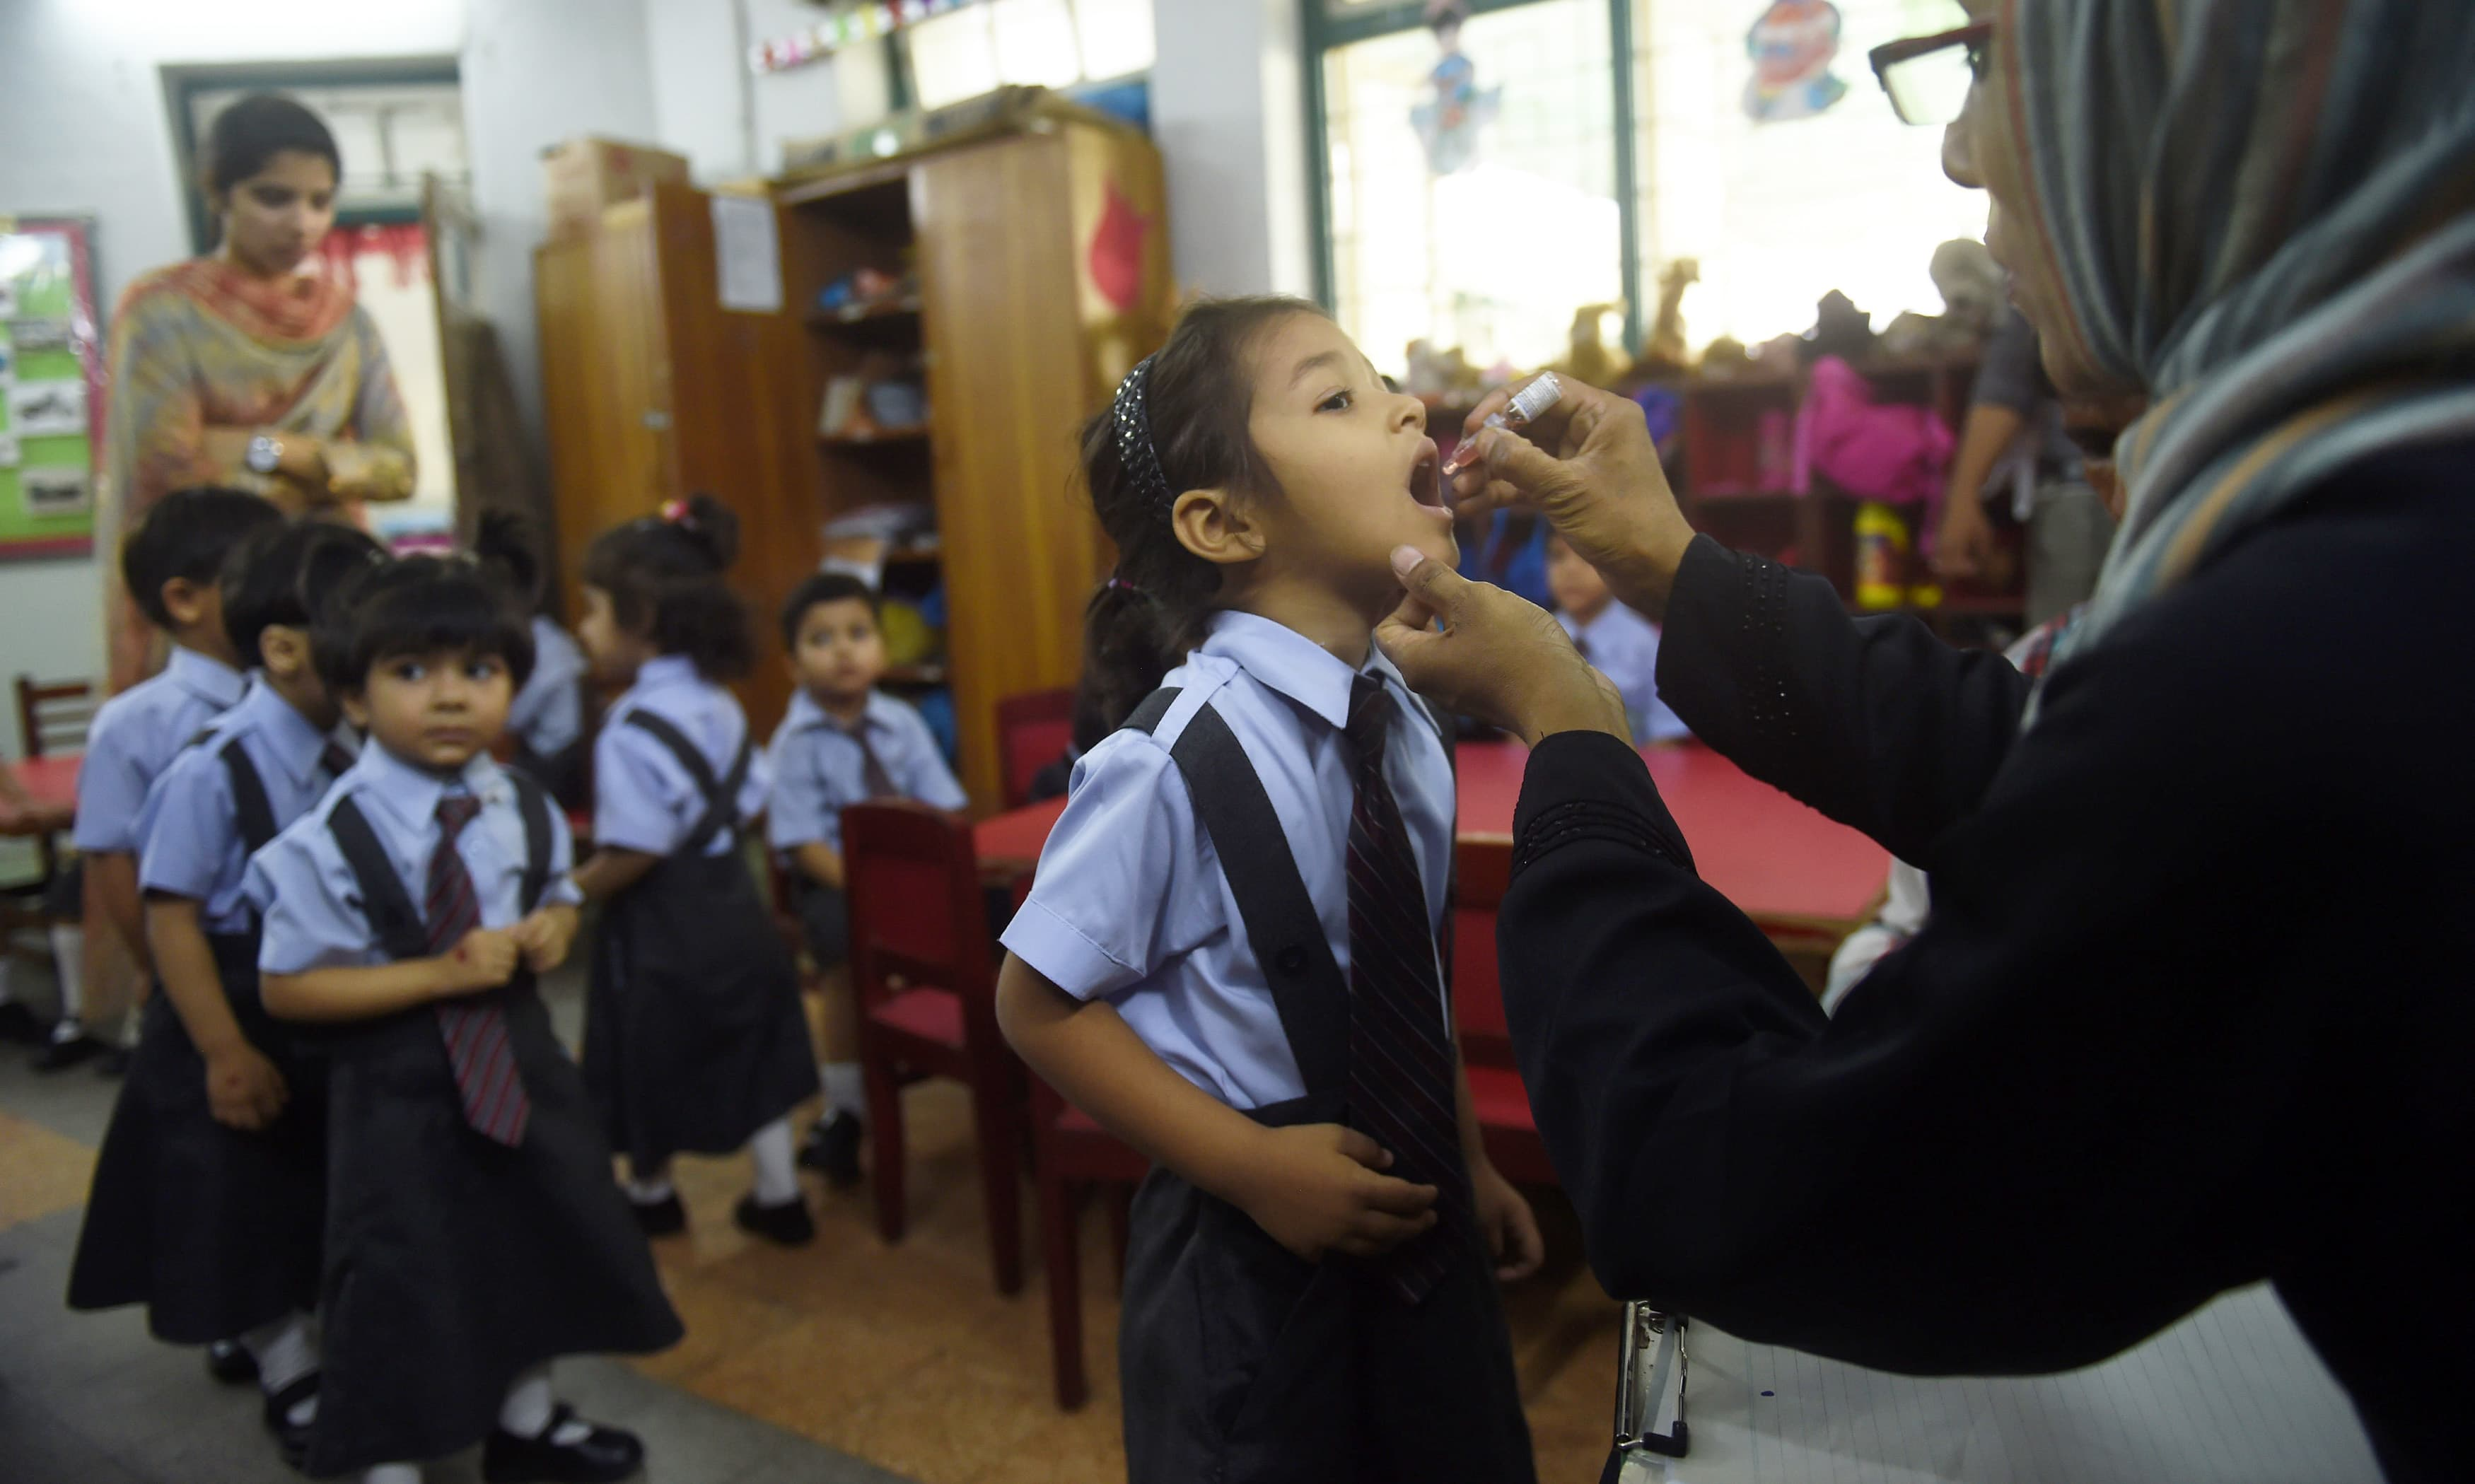 A health worker administers polio vaccine to a child at a school in Karachi. —AFP